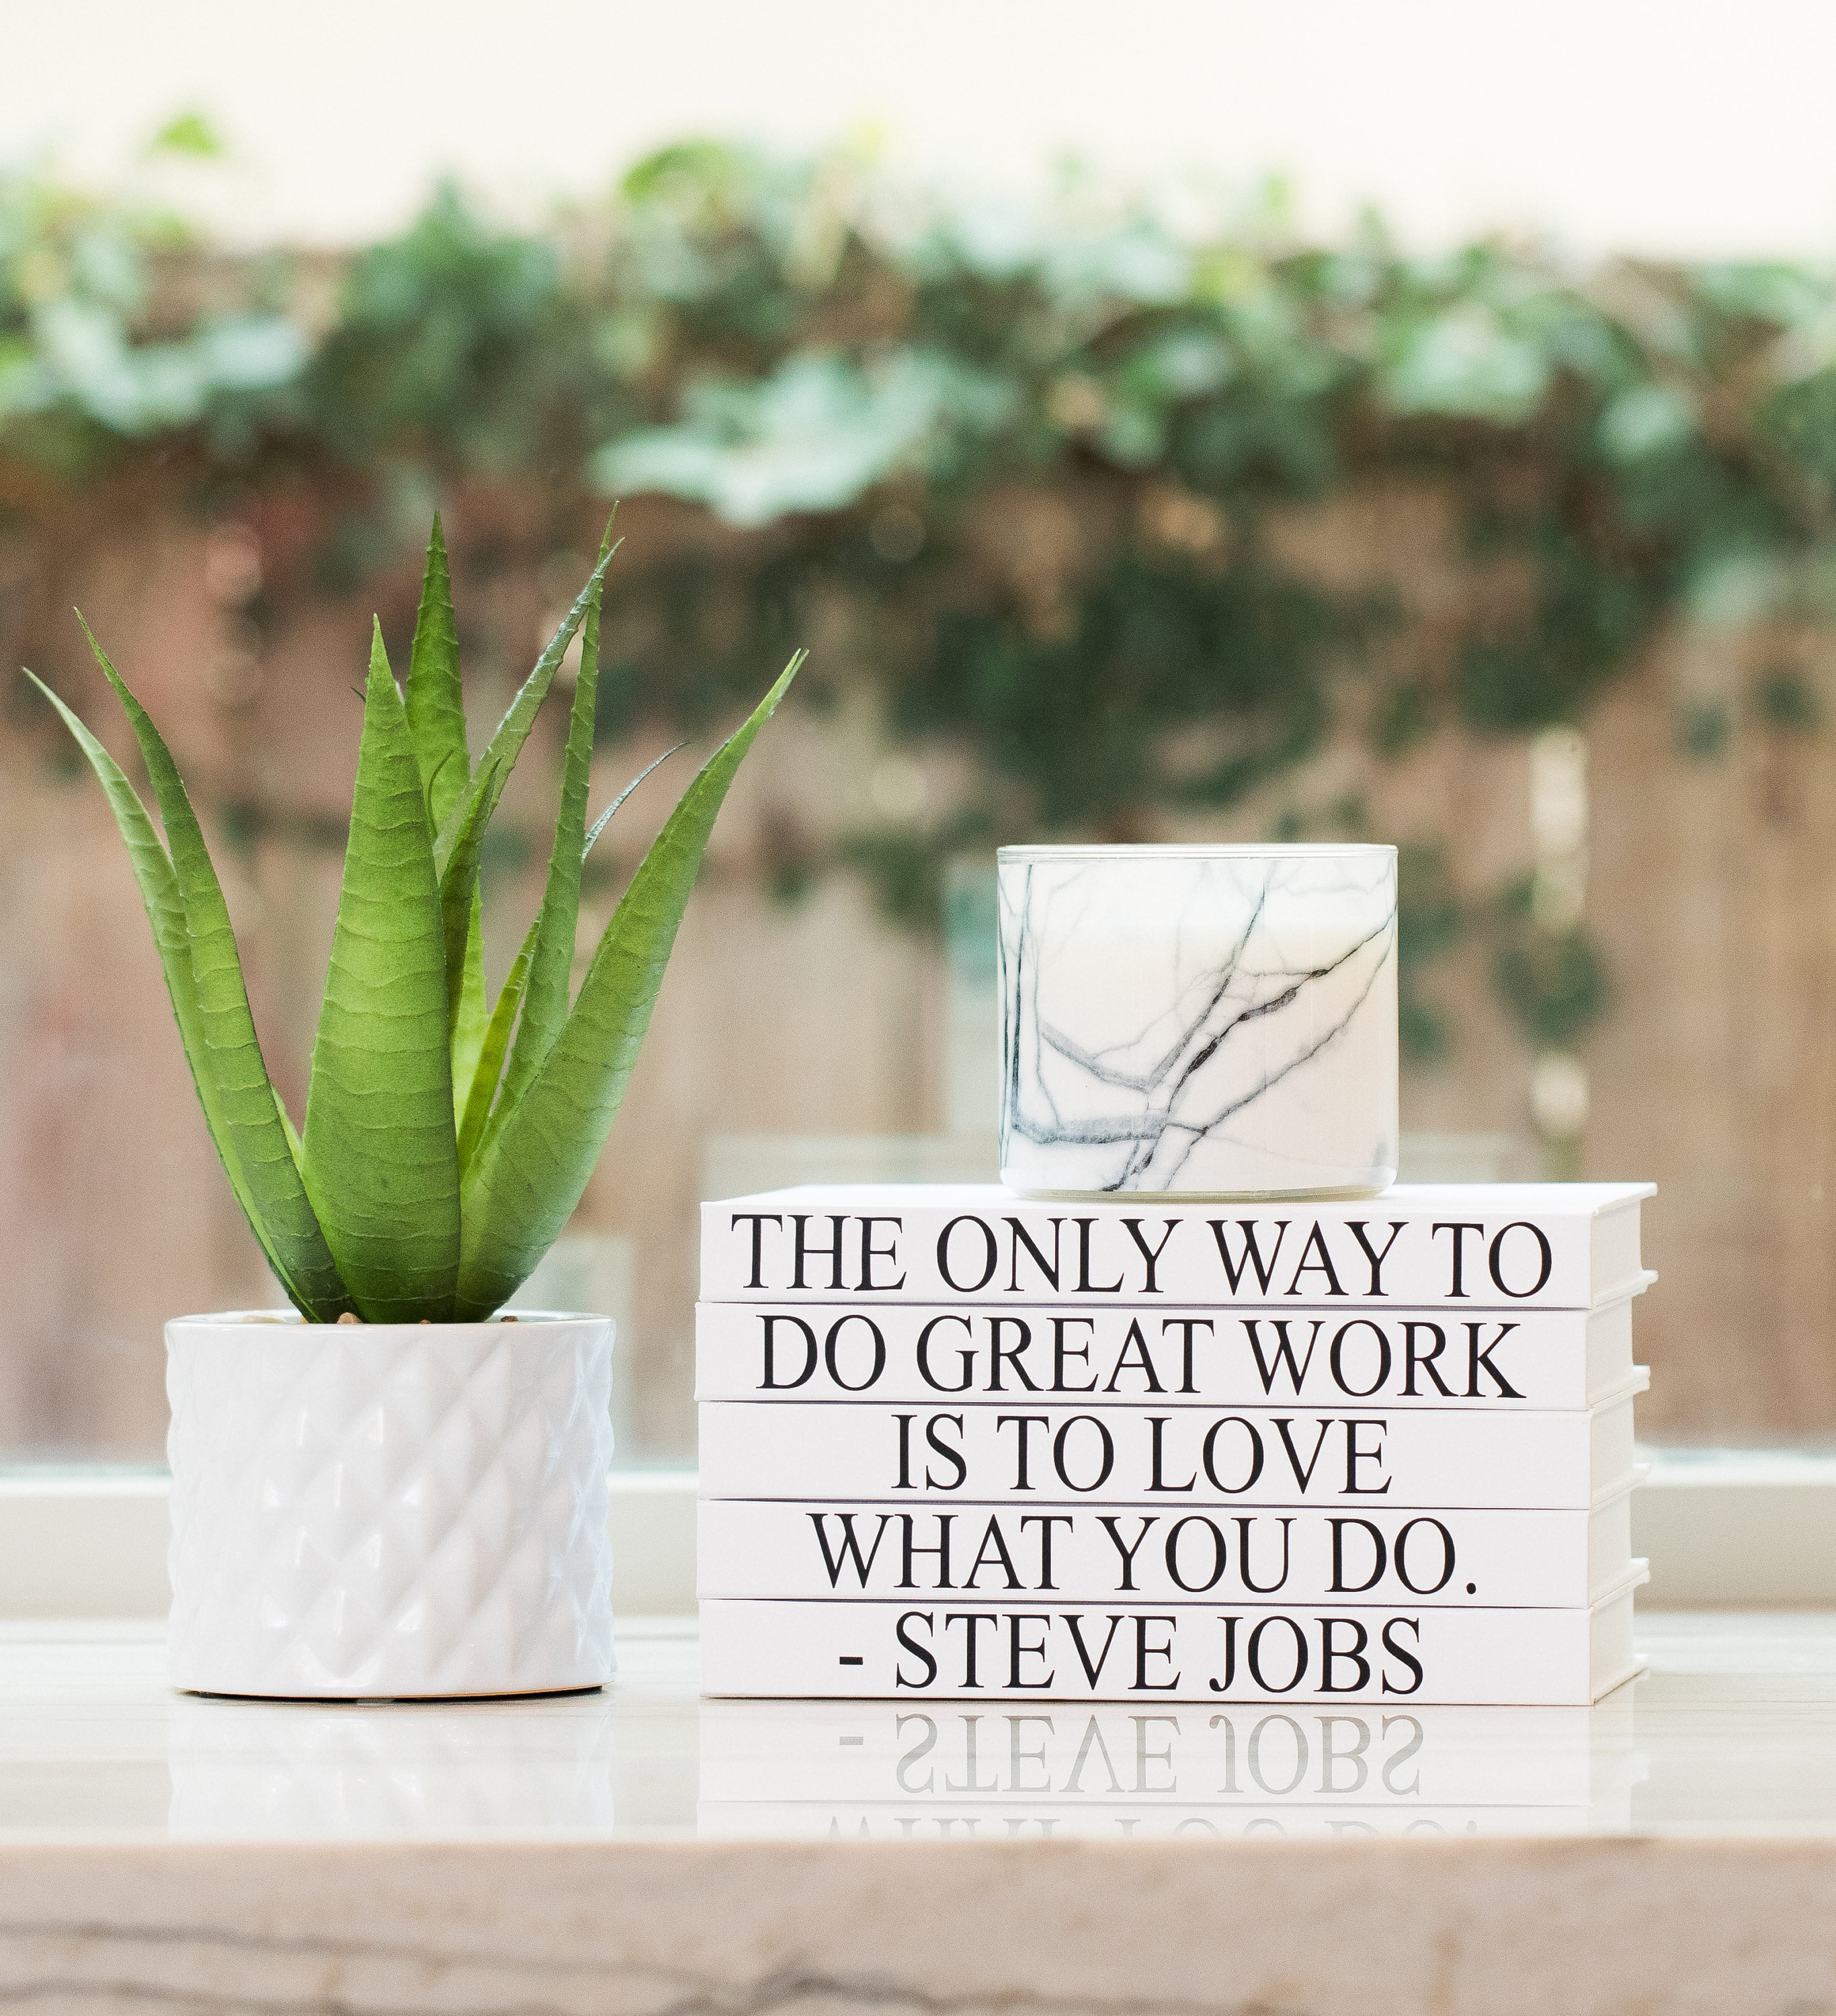 Home Decor Jobs The Only Way To Do Great Work Steve Jobs Quote Decorative 5 Book Set Valentine S Day Gift Bookshelf Design Inspirational Home Decor